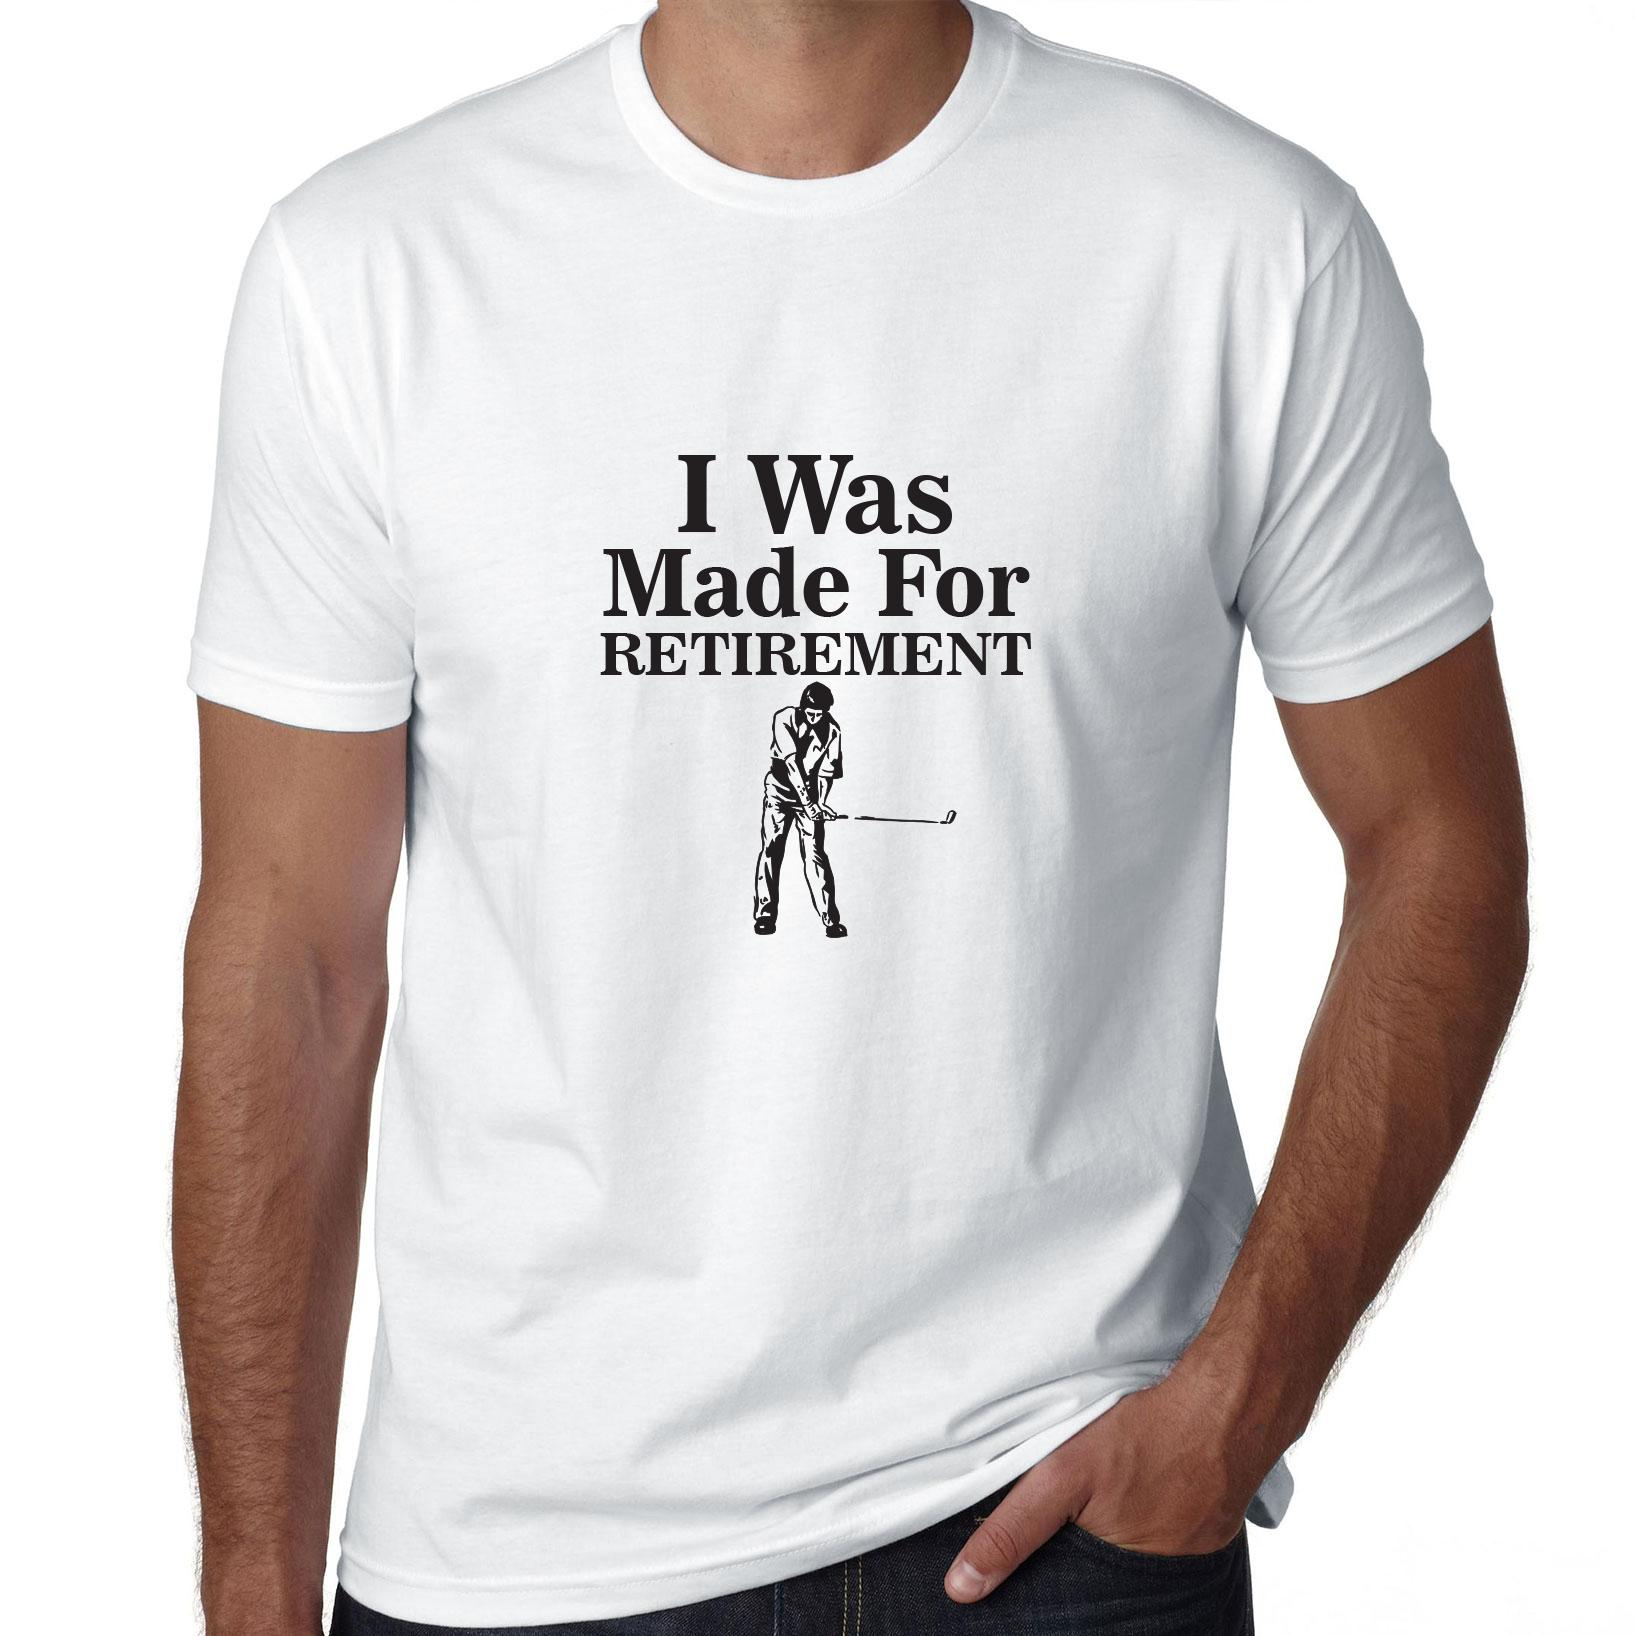 I Was Made for Retirement - Golfer Playing Golf Men's T-Shirt